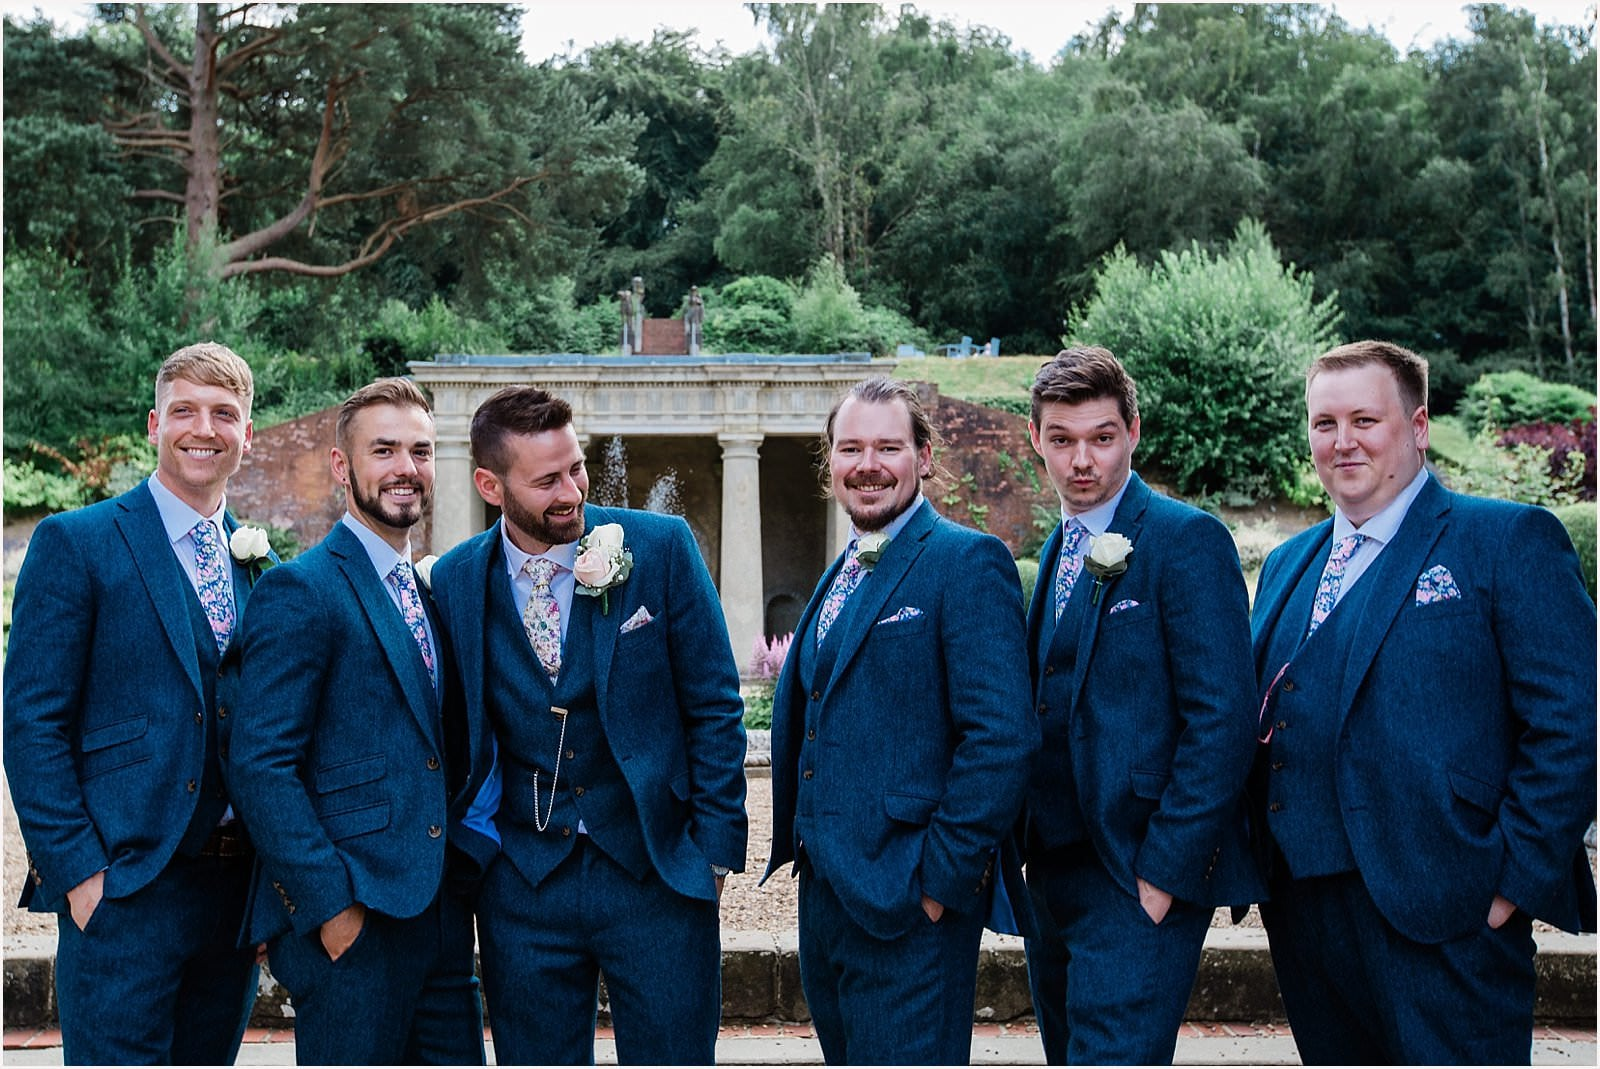 Wotton House Wedding - Justine + Rob's stunning wedding 31